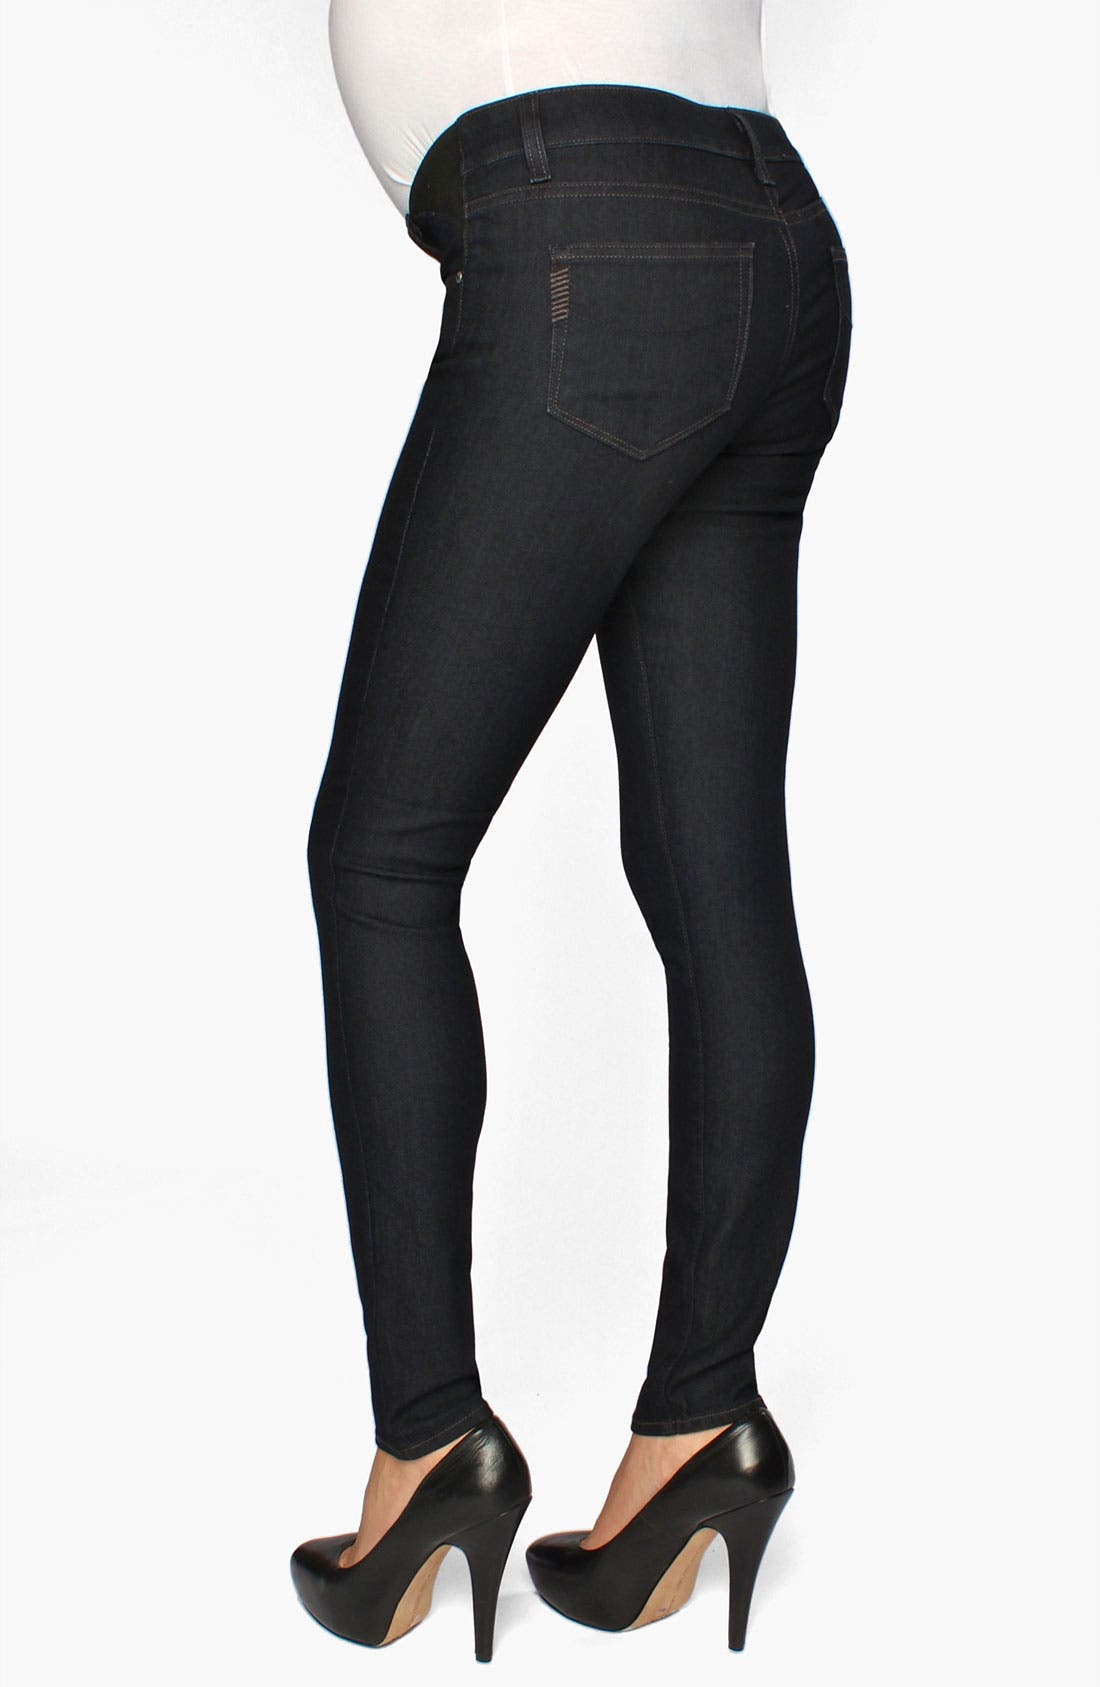 Alternate Image 1 Selected - Paige Denim 'Verdugo' Maternity Ultra Skinny Jeans (Twilight)